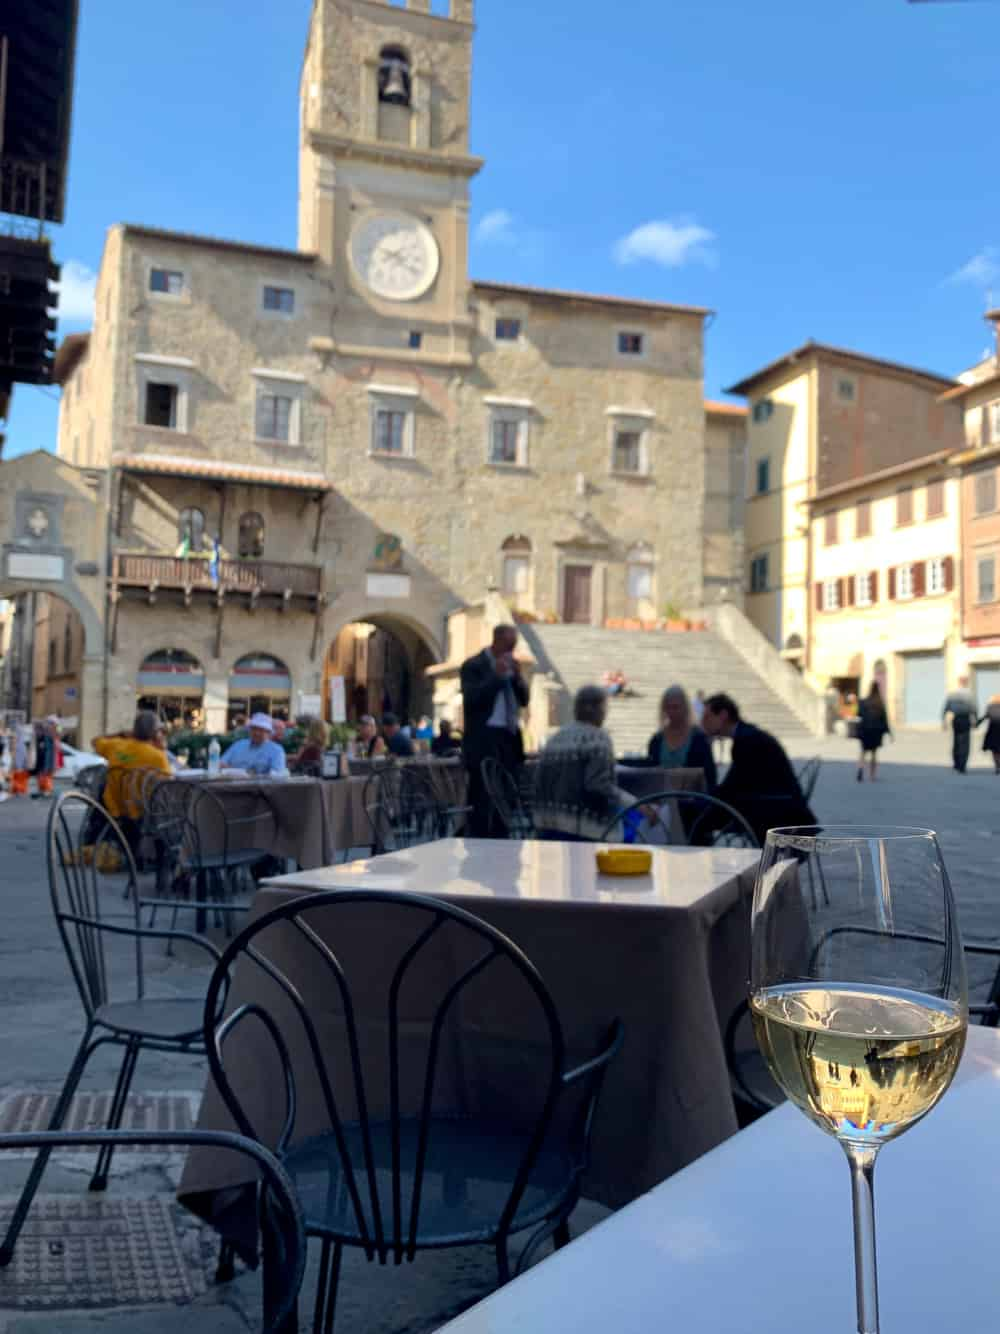 People watching at Bar Signorelli - Cortona restaurants & bars to visit